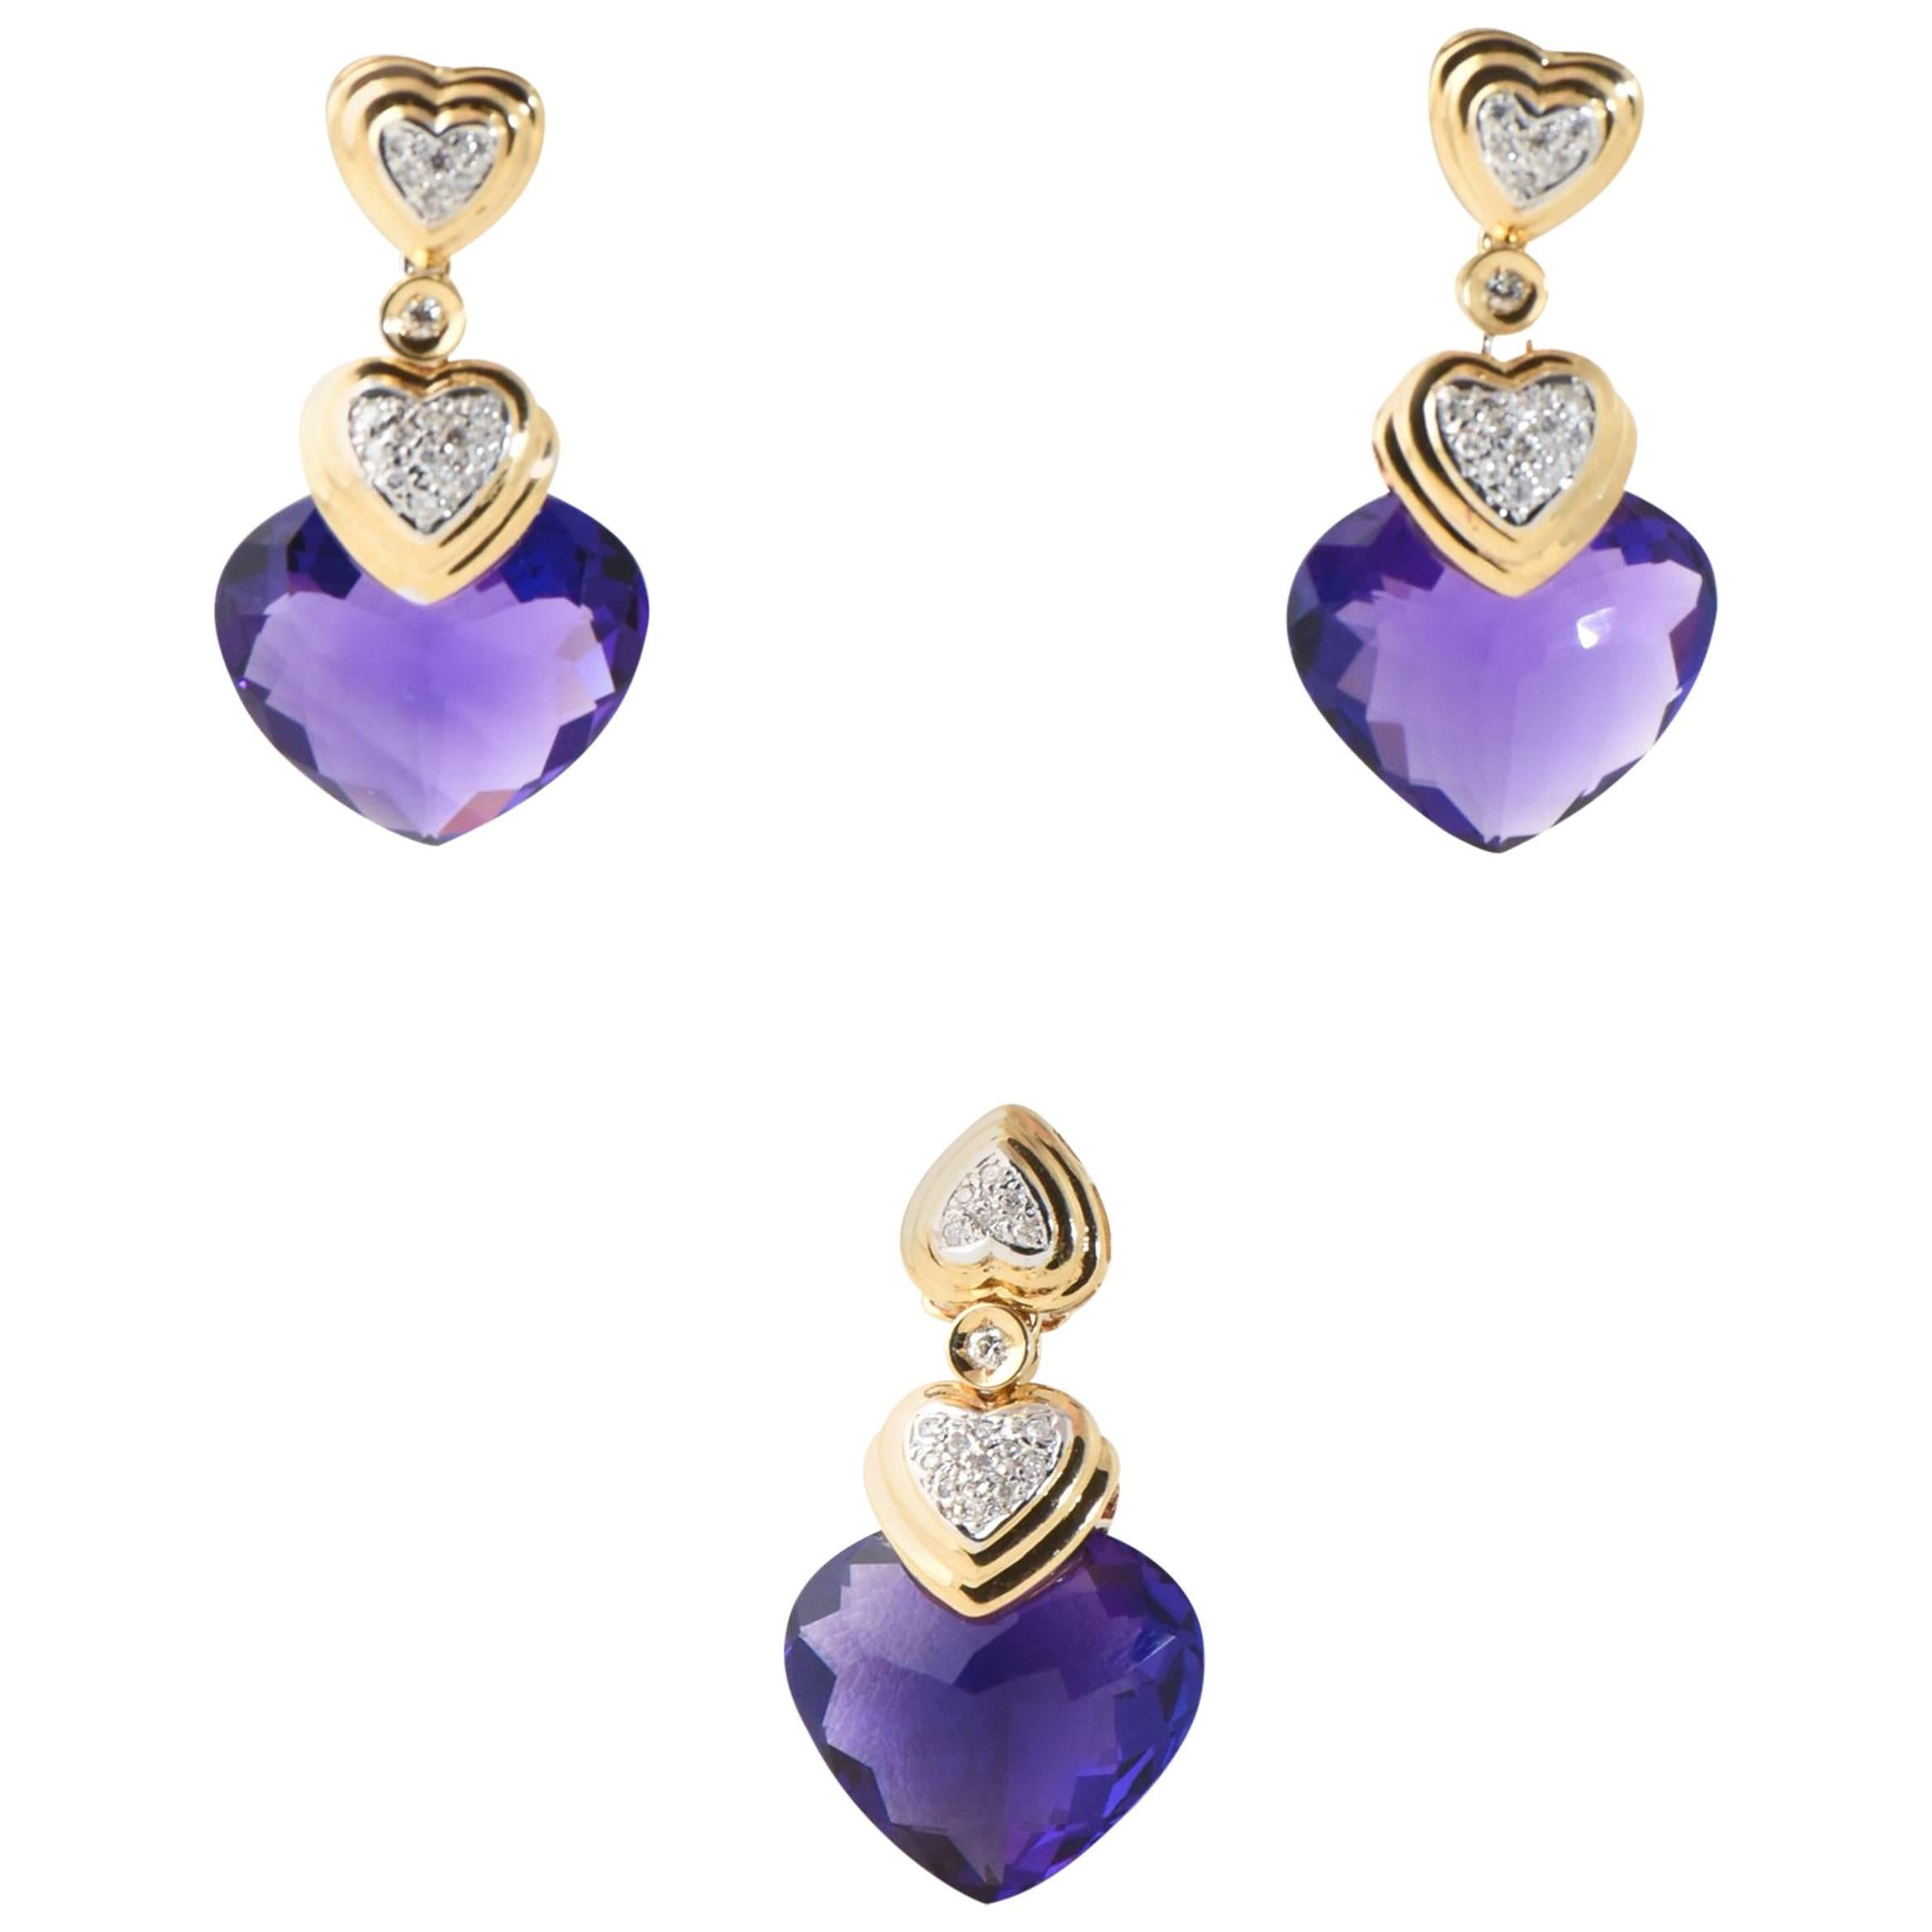 Amethyst Diamond Gold Drop Earrings and Matching Pendant Suite